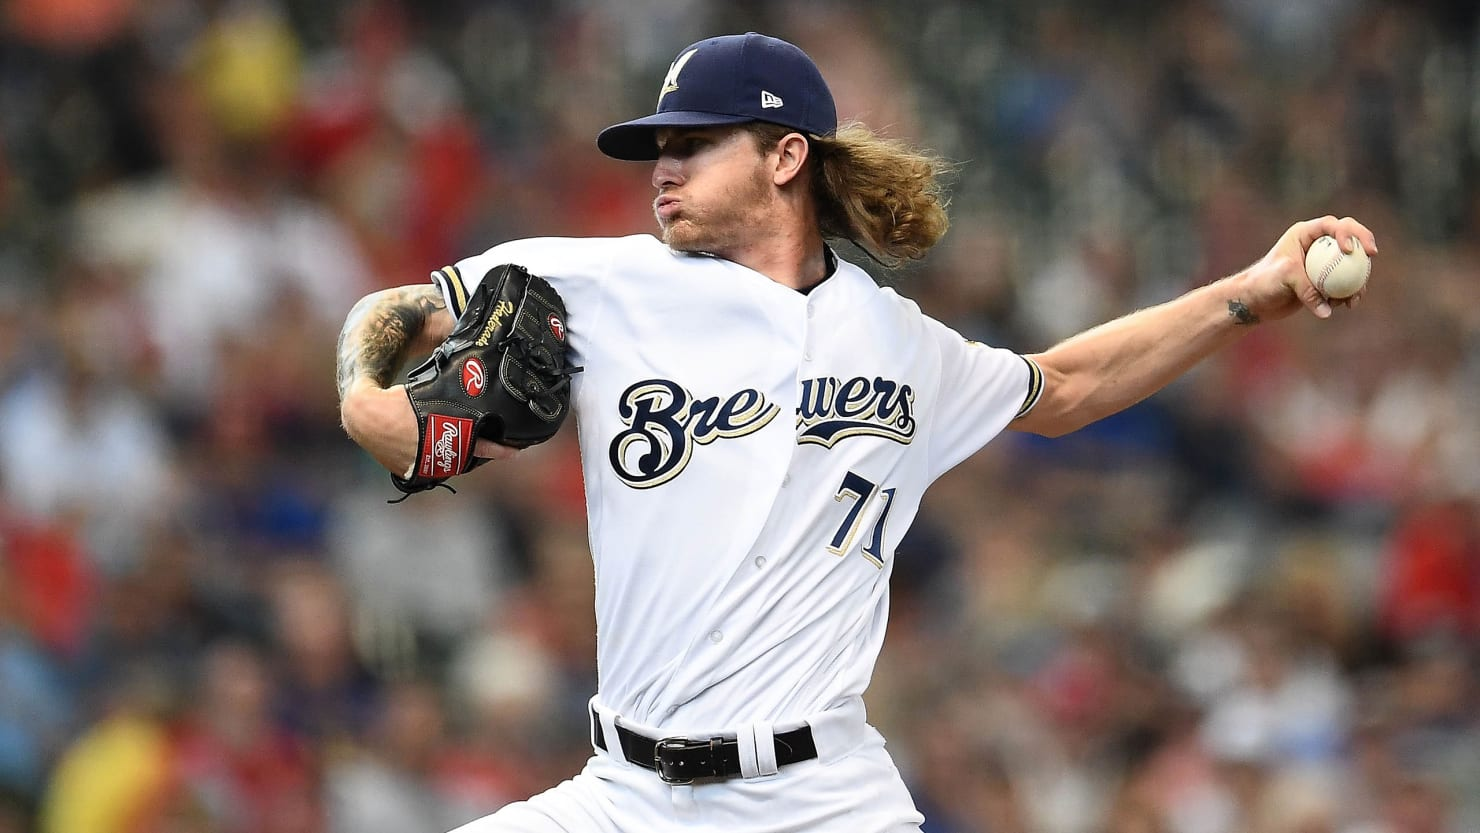 Brewers All Star Josh Hader Was Exposed As A Teen Racist What Happens Now